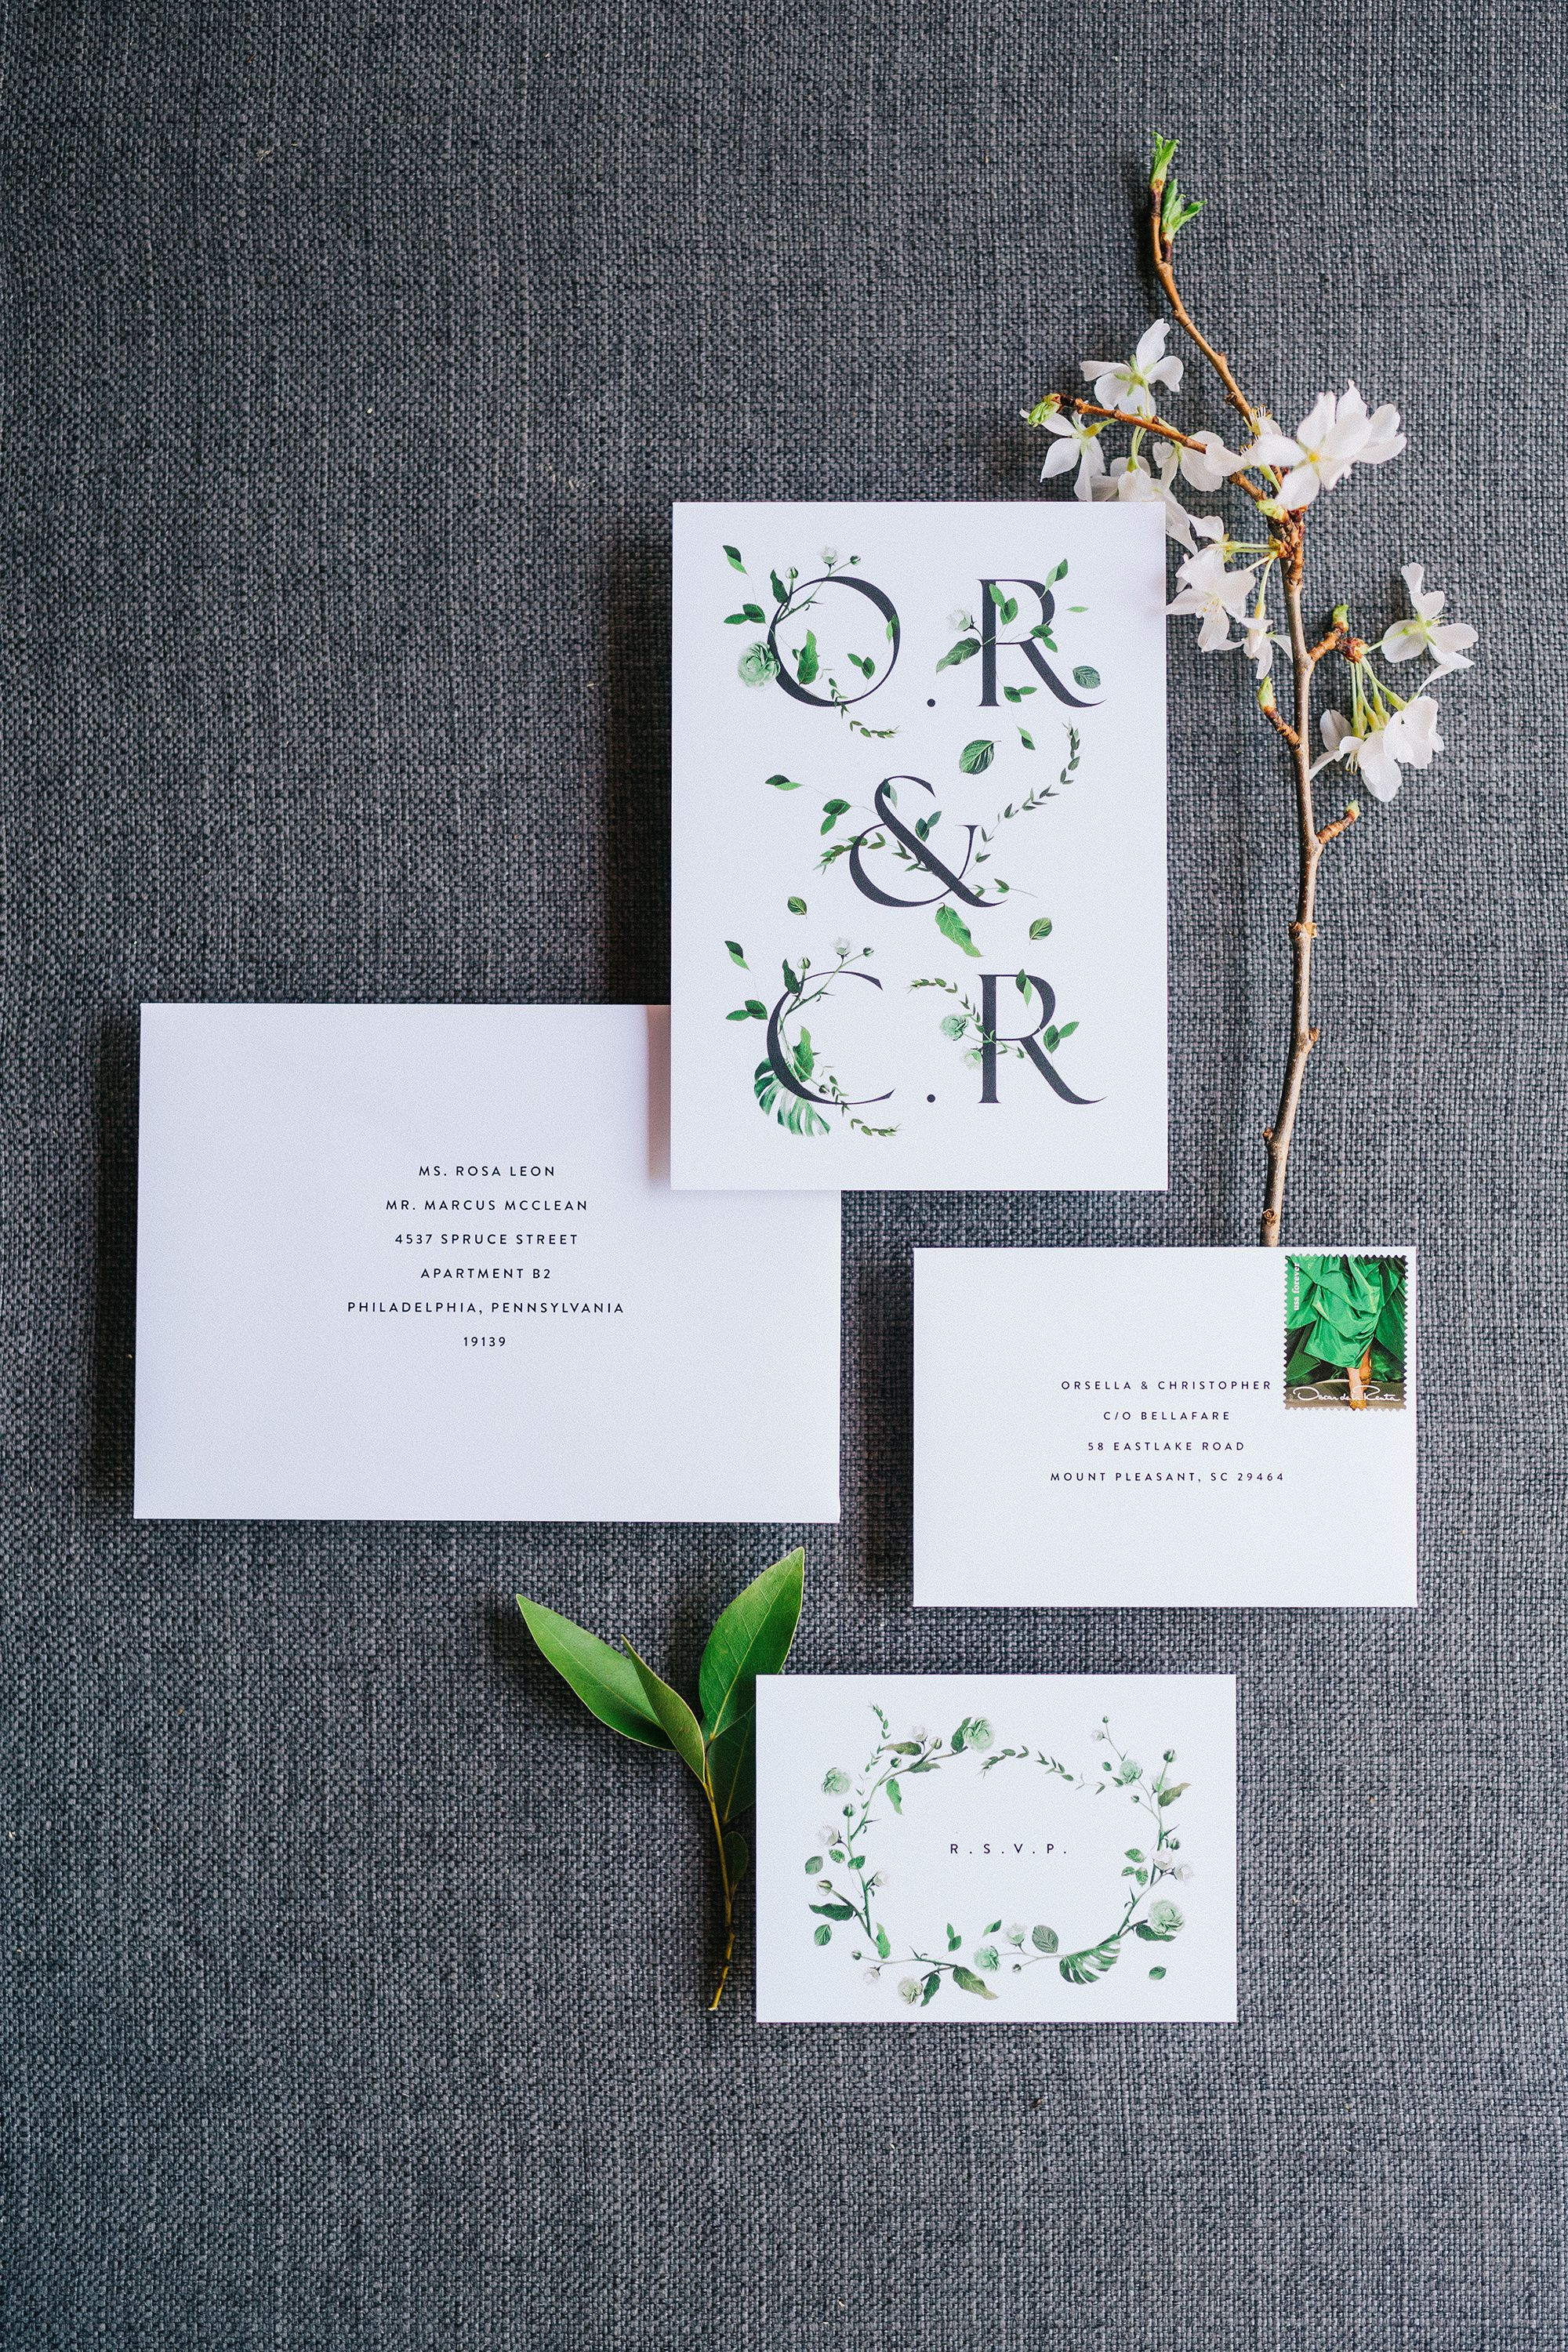 Average Cost of Wedding Invitations: How Much Are They?